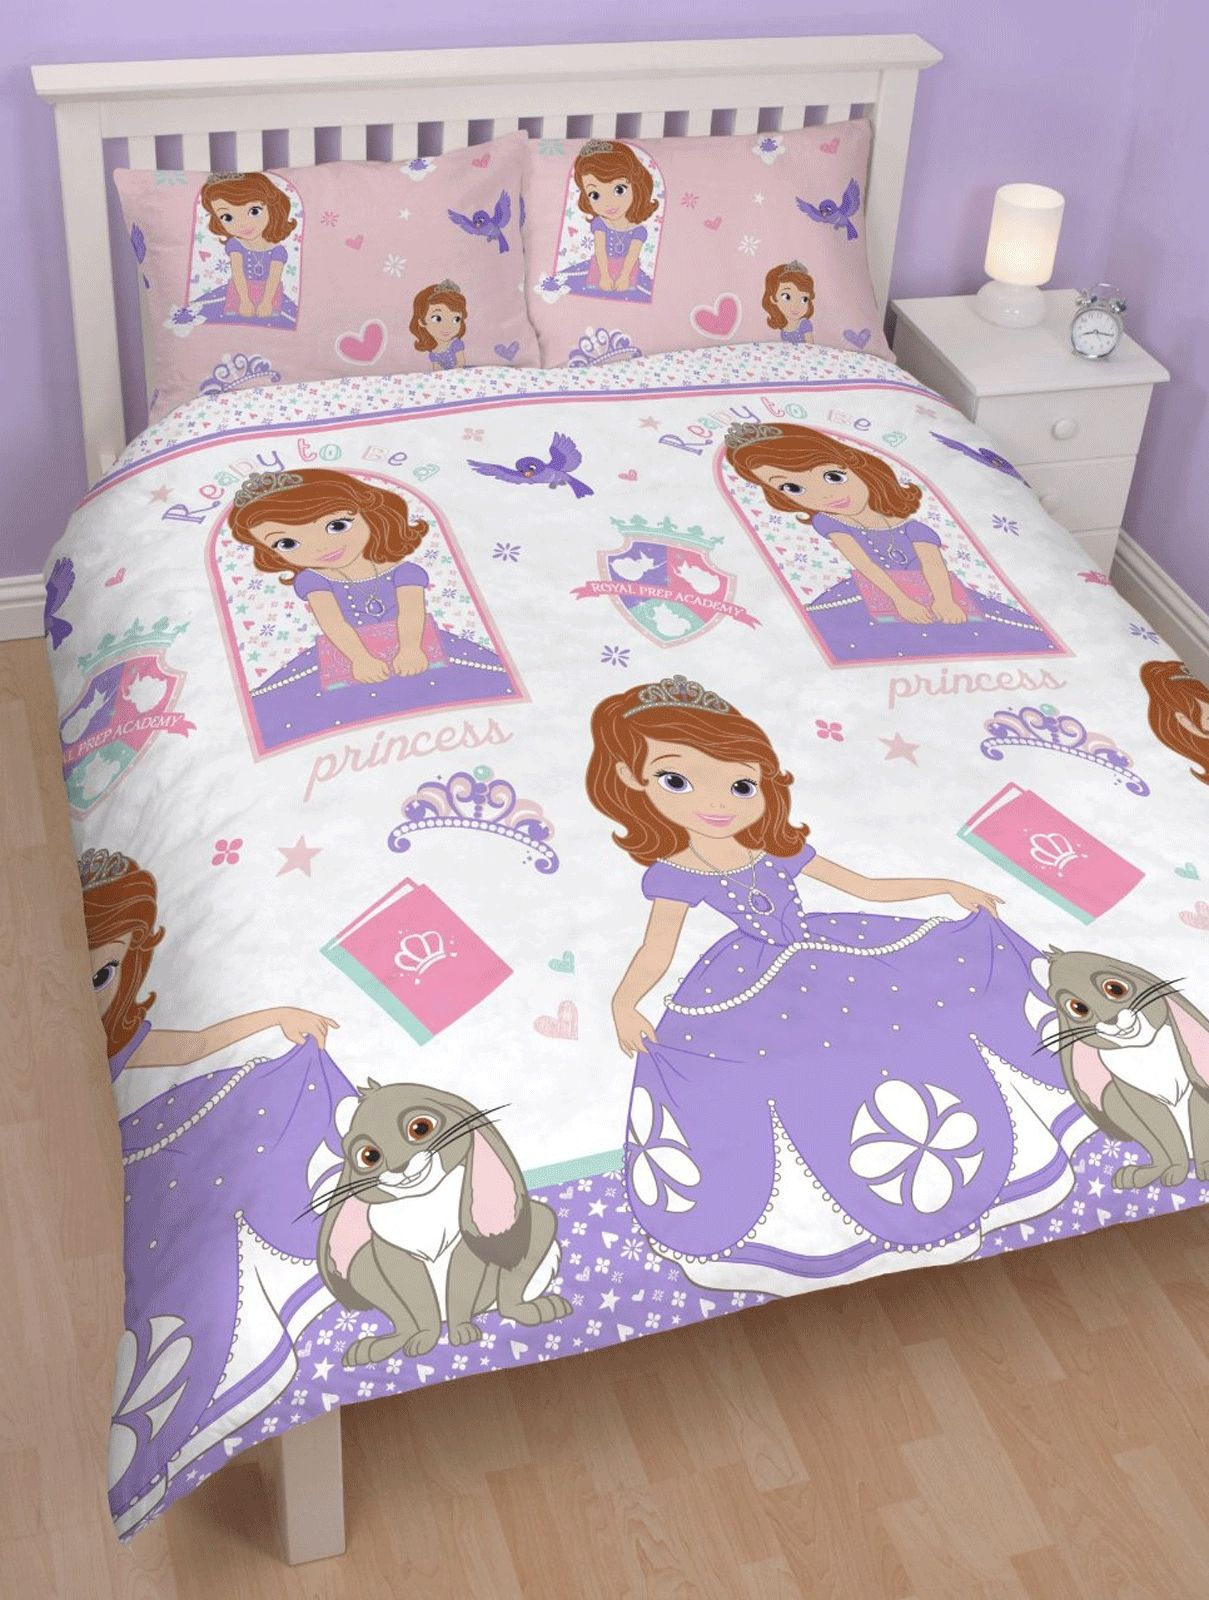 Reduced Price Was 18 99 Now Only 13 95 Sofia The First